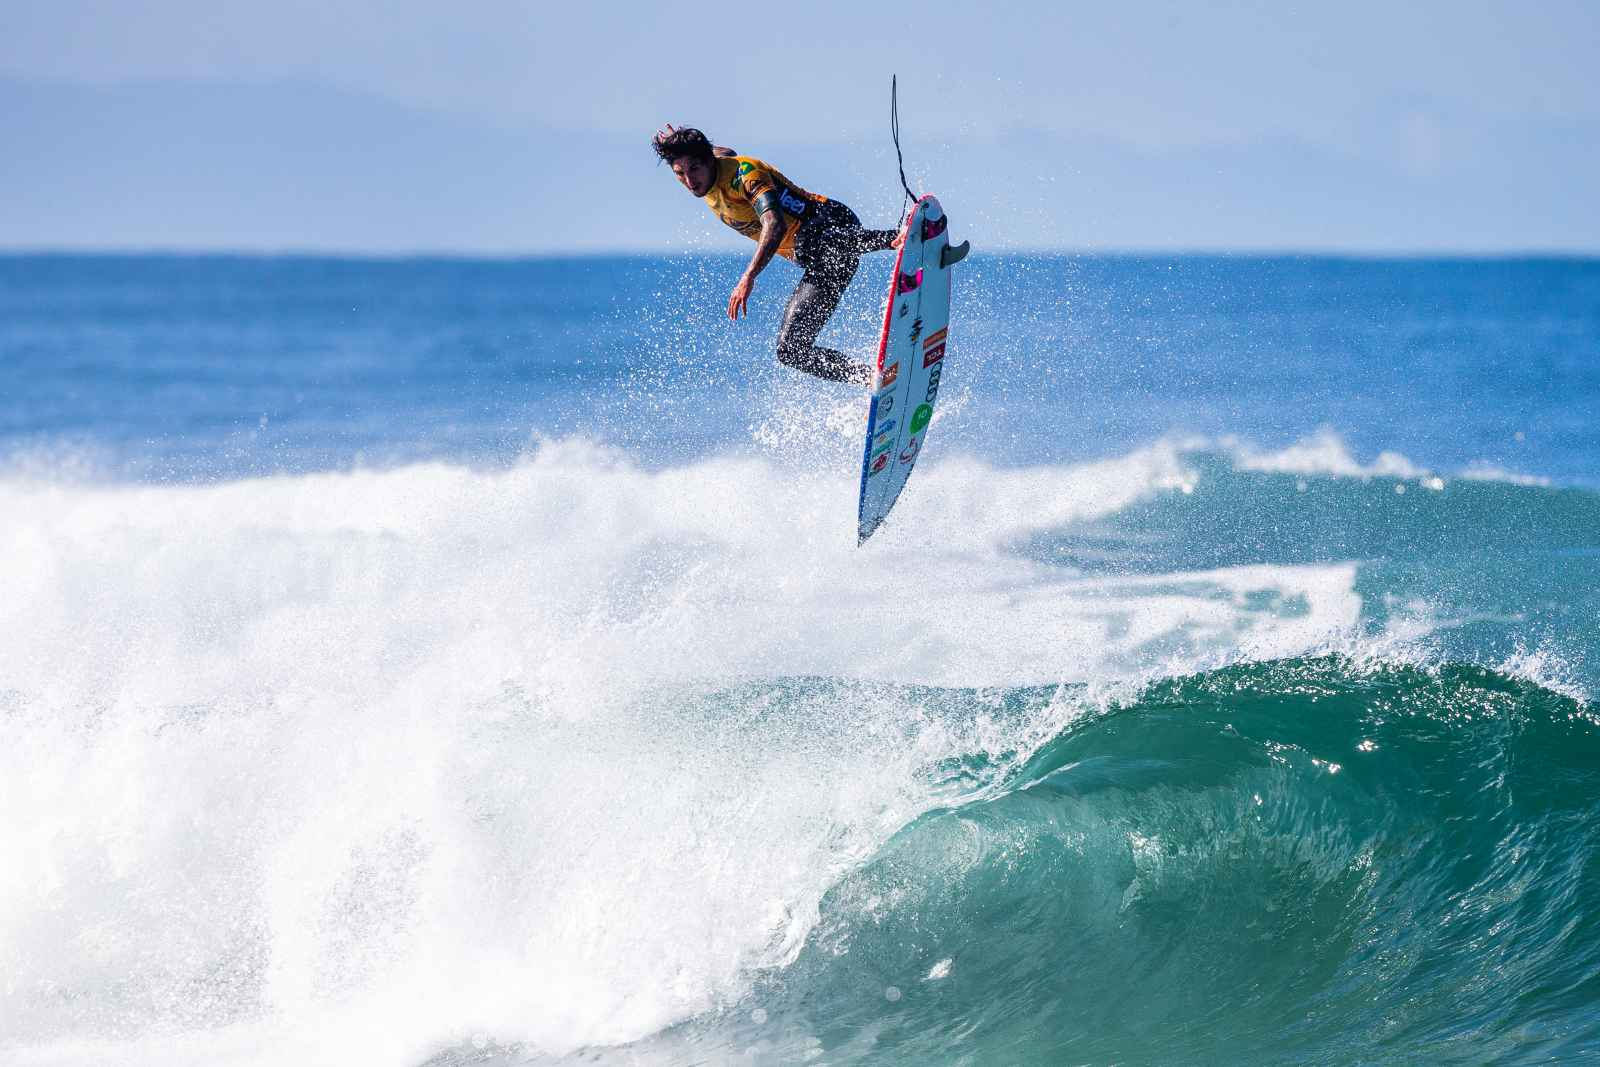 Highlights from the first day of the #QuikPro and #RoxyPro France